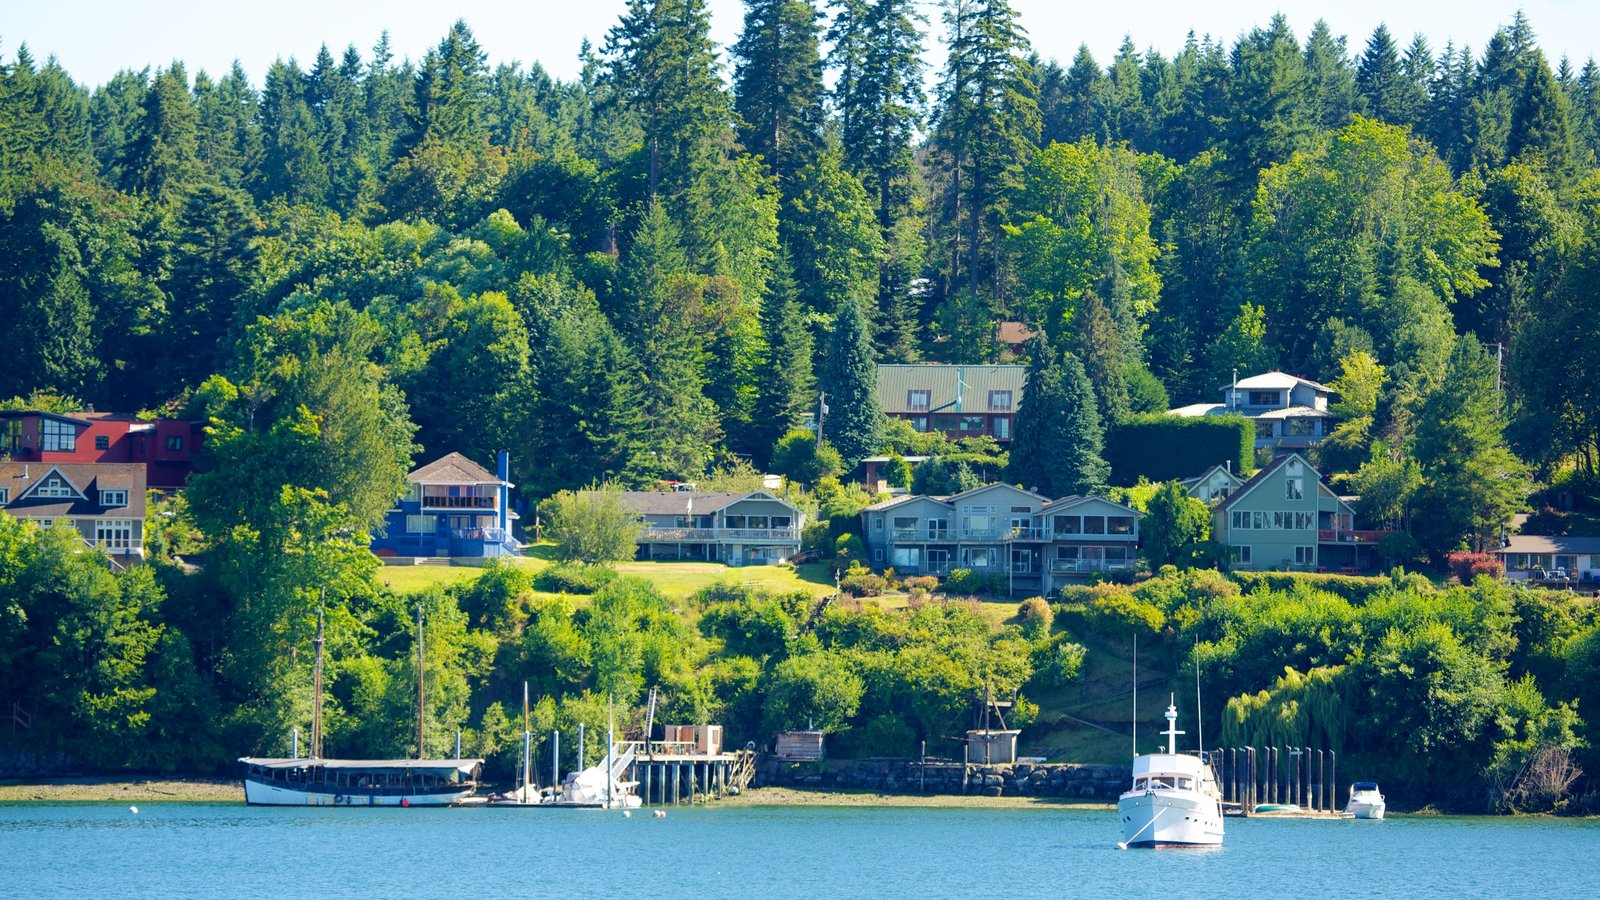 Bainbridge Island which includes a coastal town, boating and forests